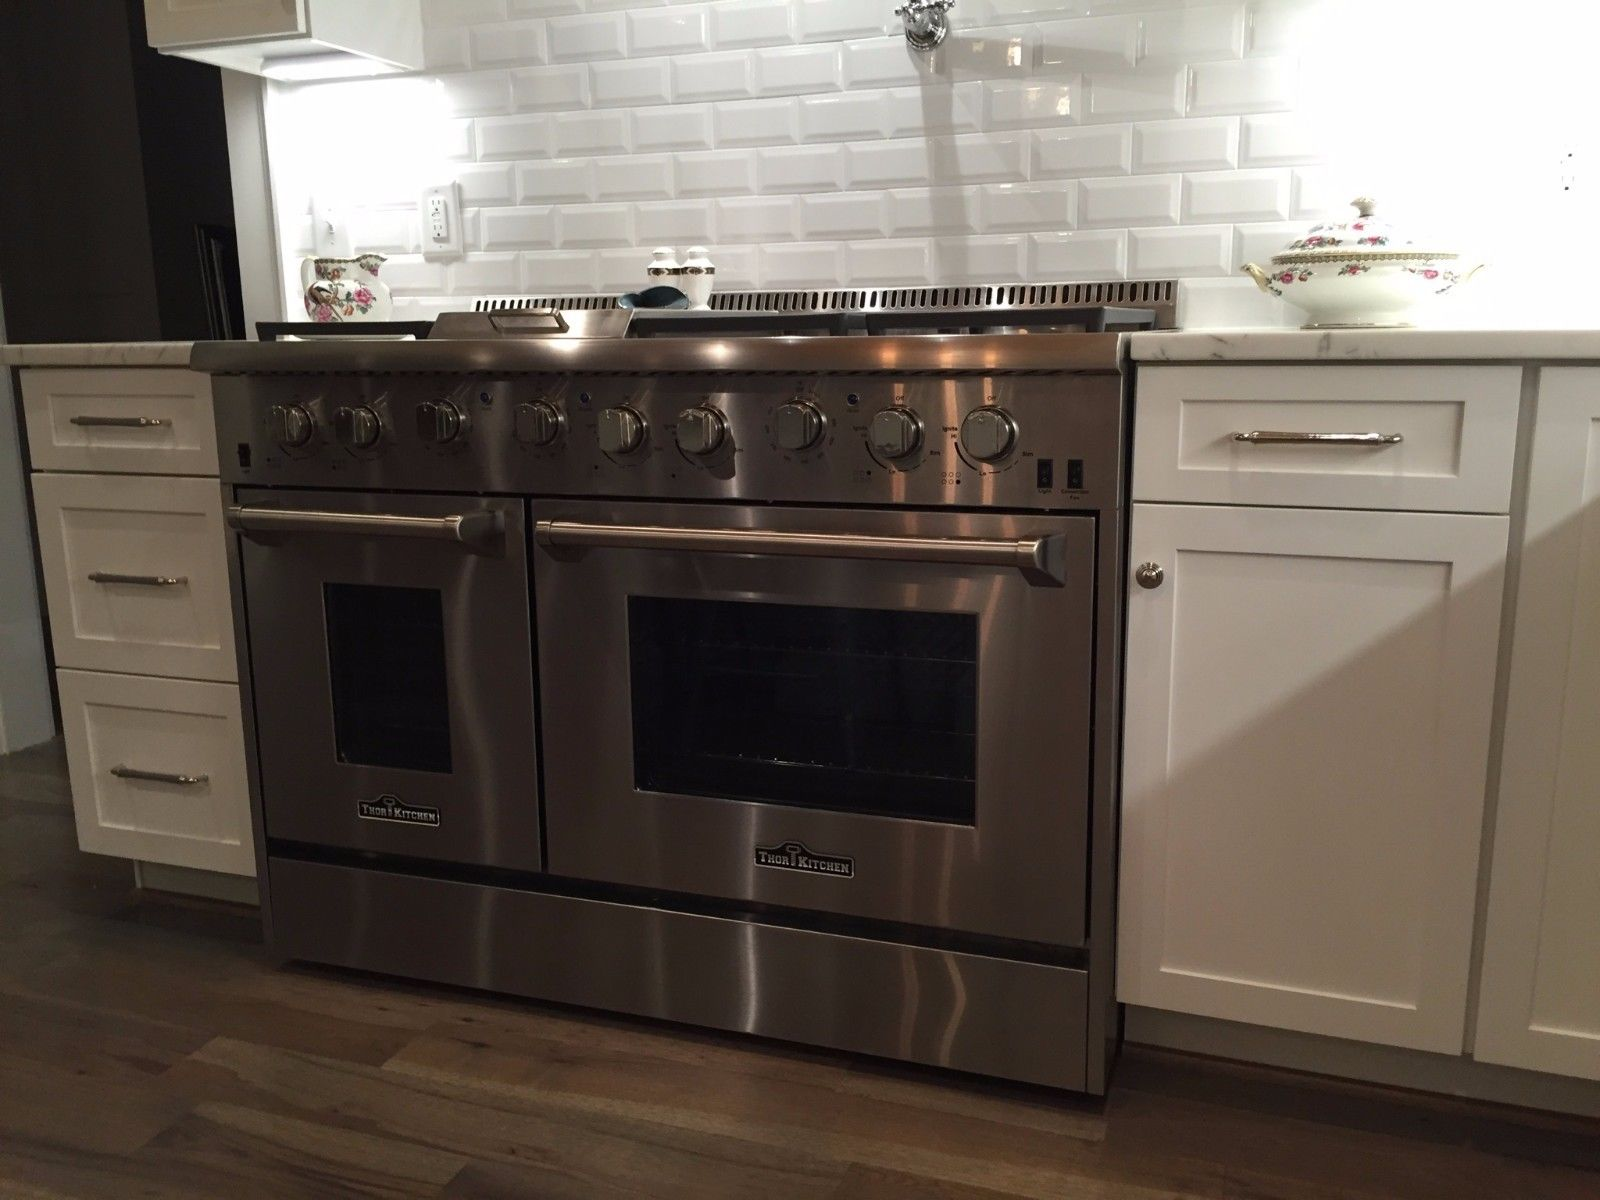 kenmore wid qlt cooking prod gas convection stainless ft steel range hei w kitchen elite p cu oven double